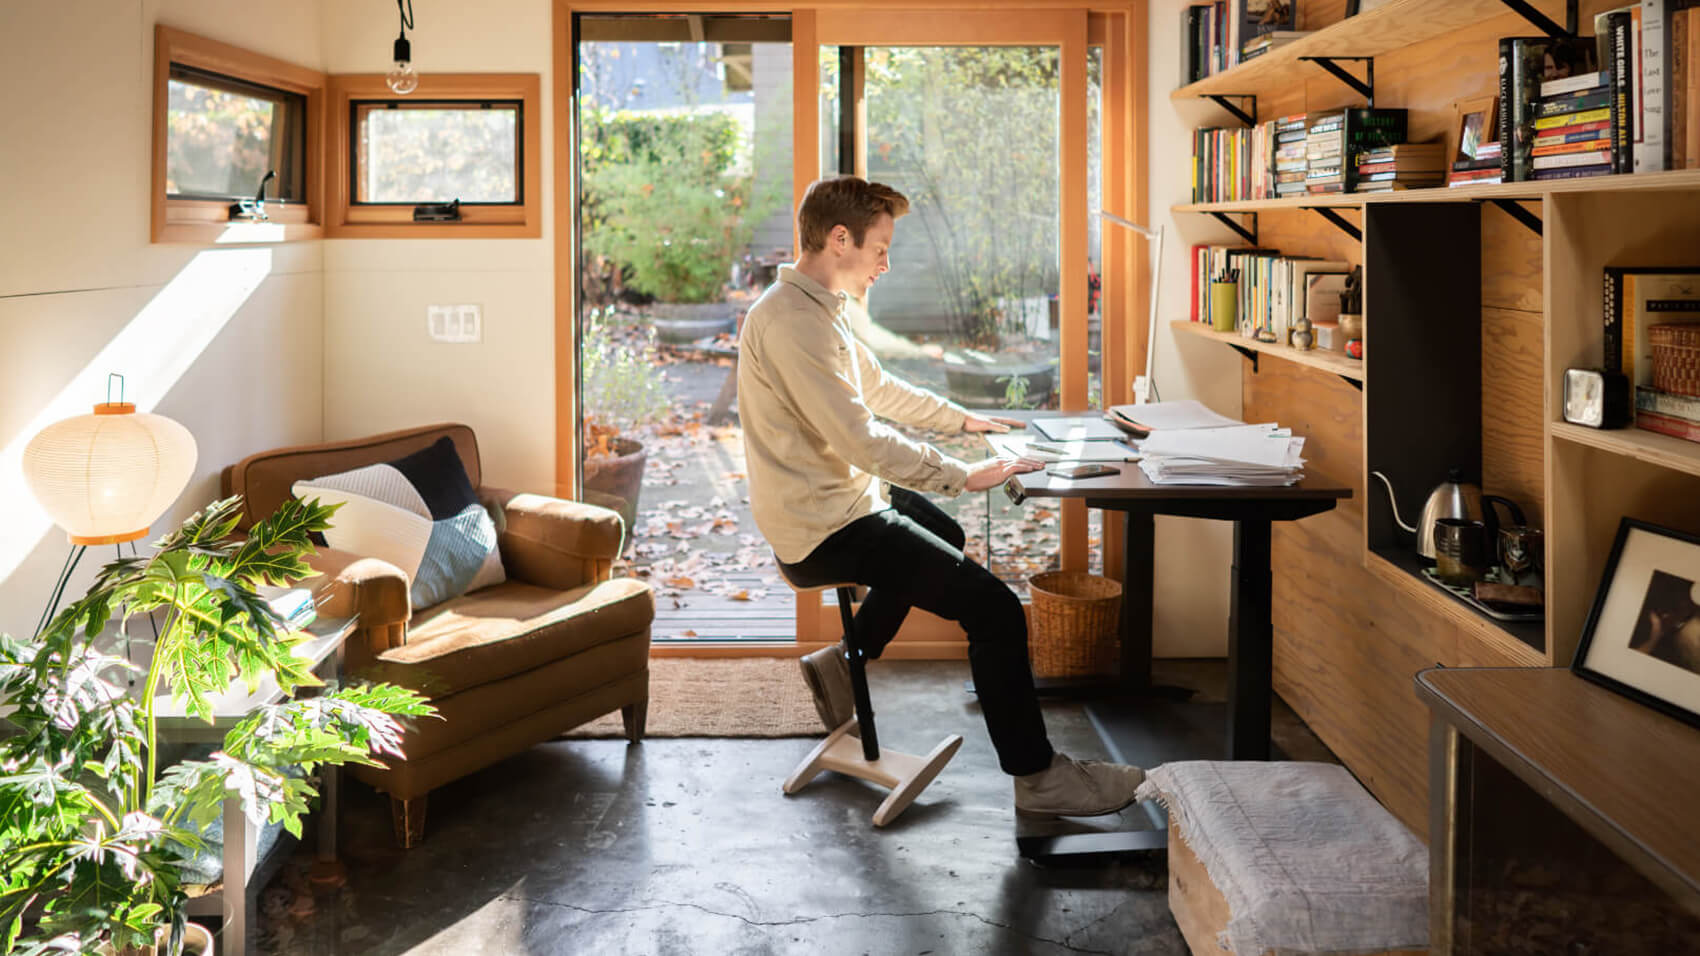 fully ergonomics jarvis standing desk and tic toc